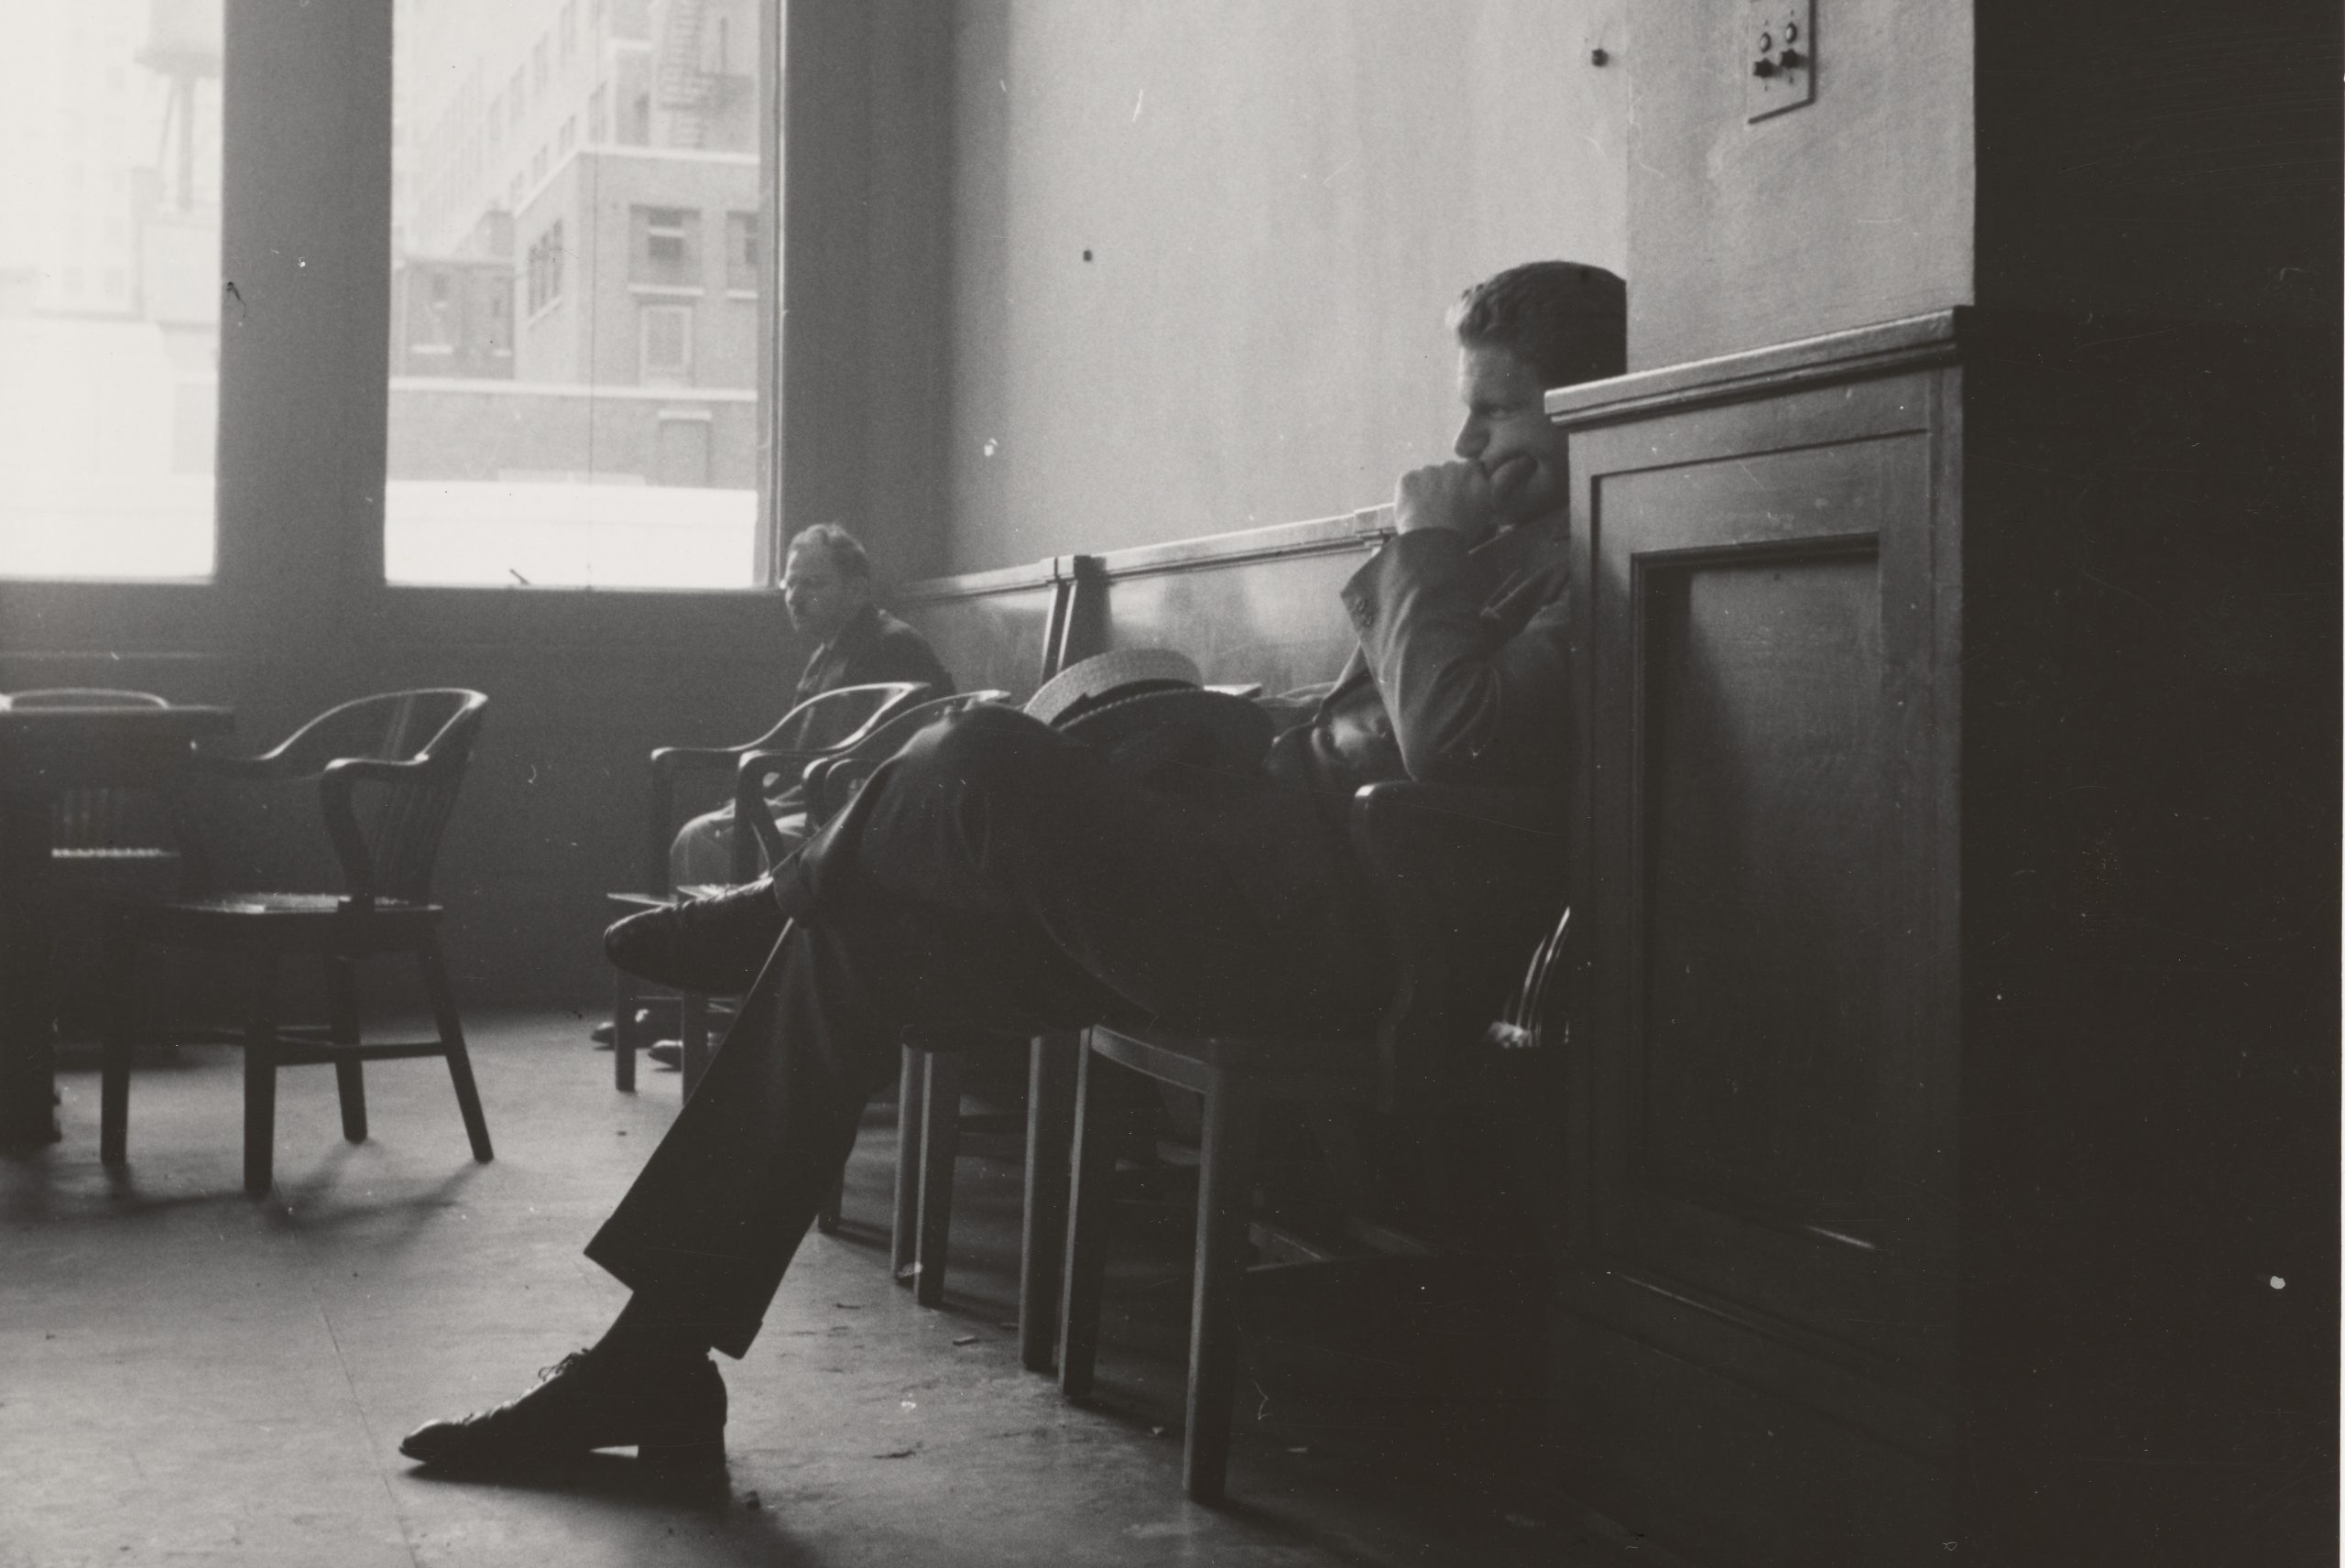 Dangling Ma's review has inspired this featured image of a man in a bar in New York, in 1939. Photo taken from the New York Public Library collection.